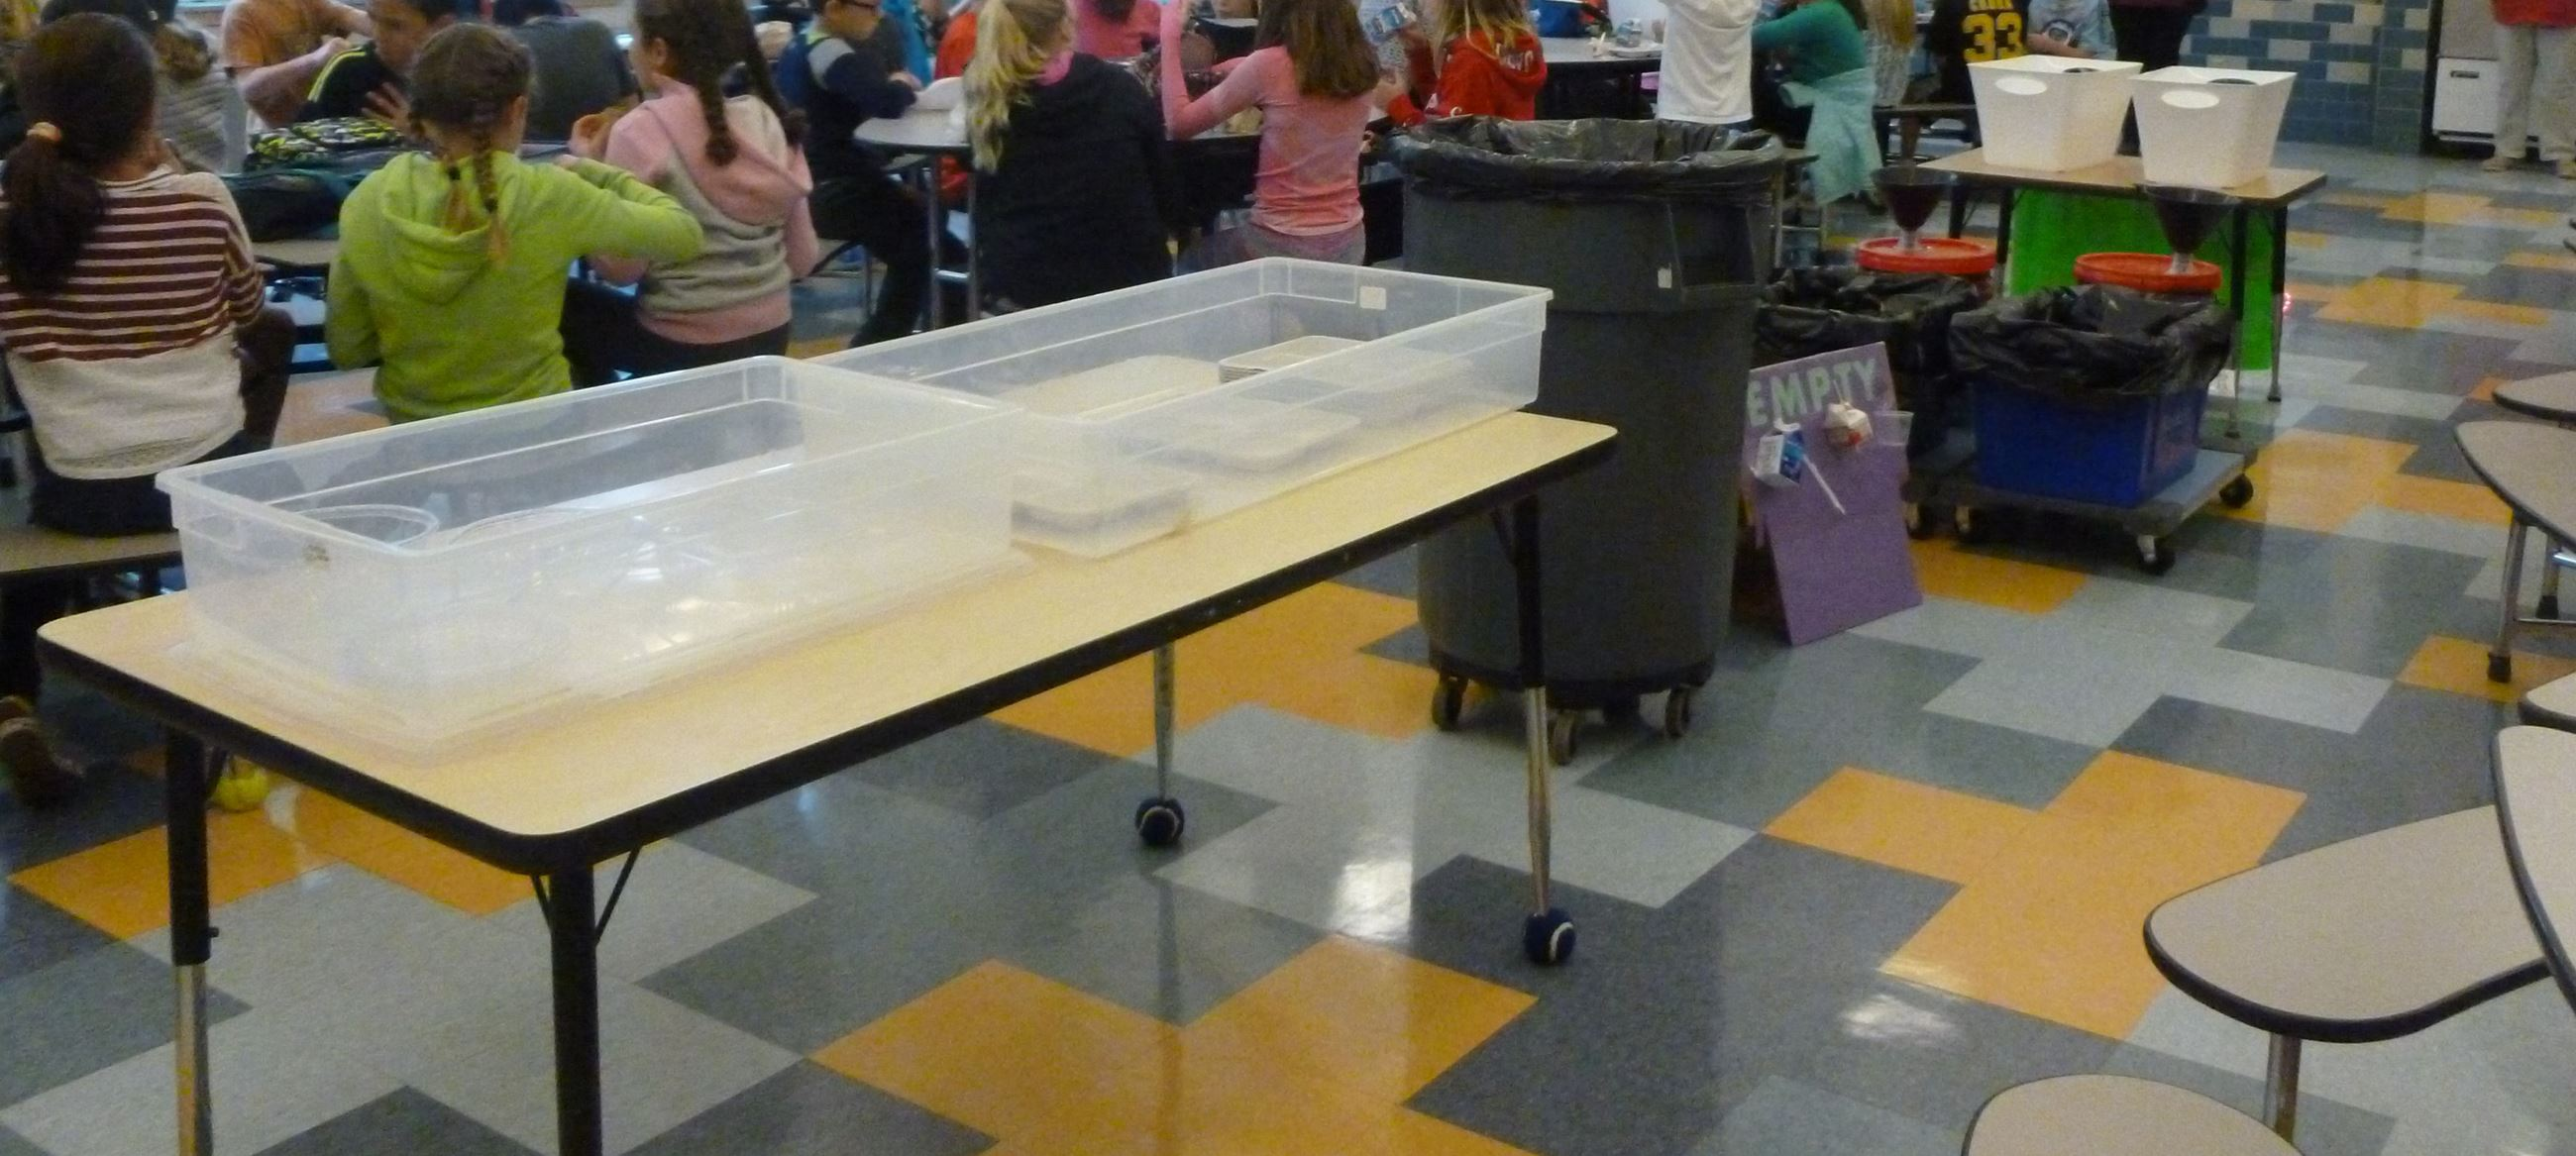 Bates Cafeteria with Recycling